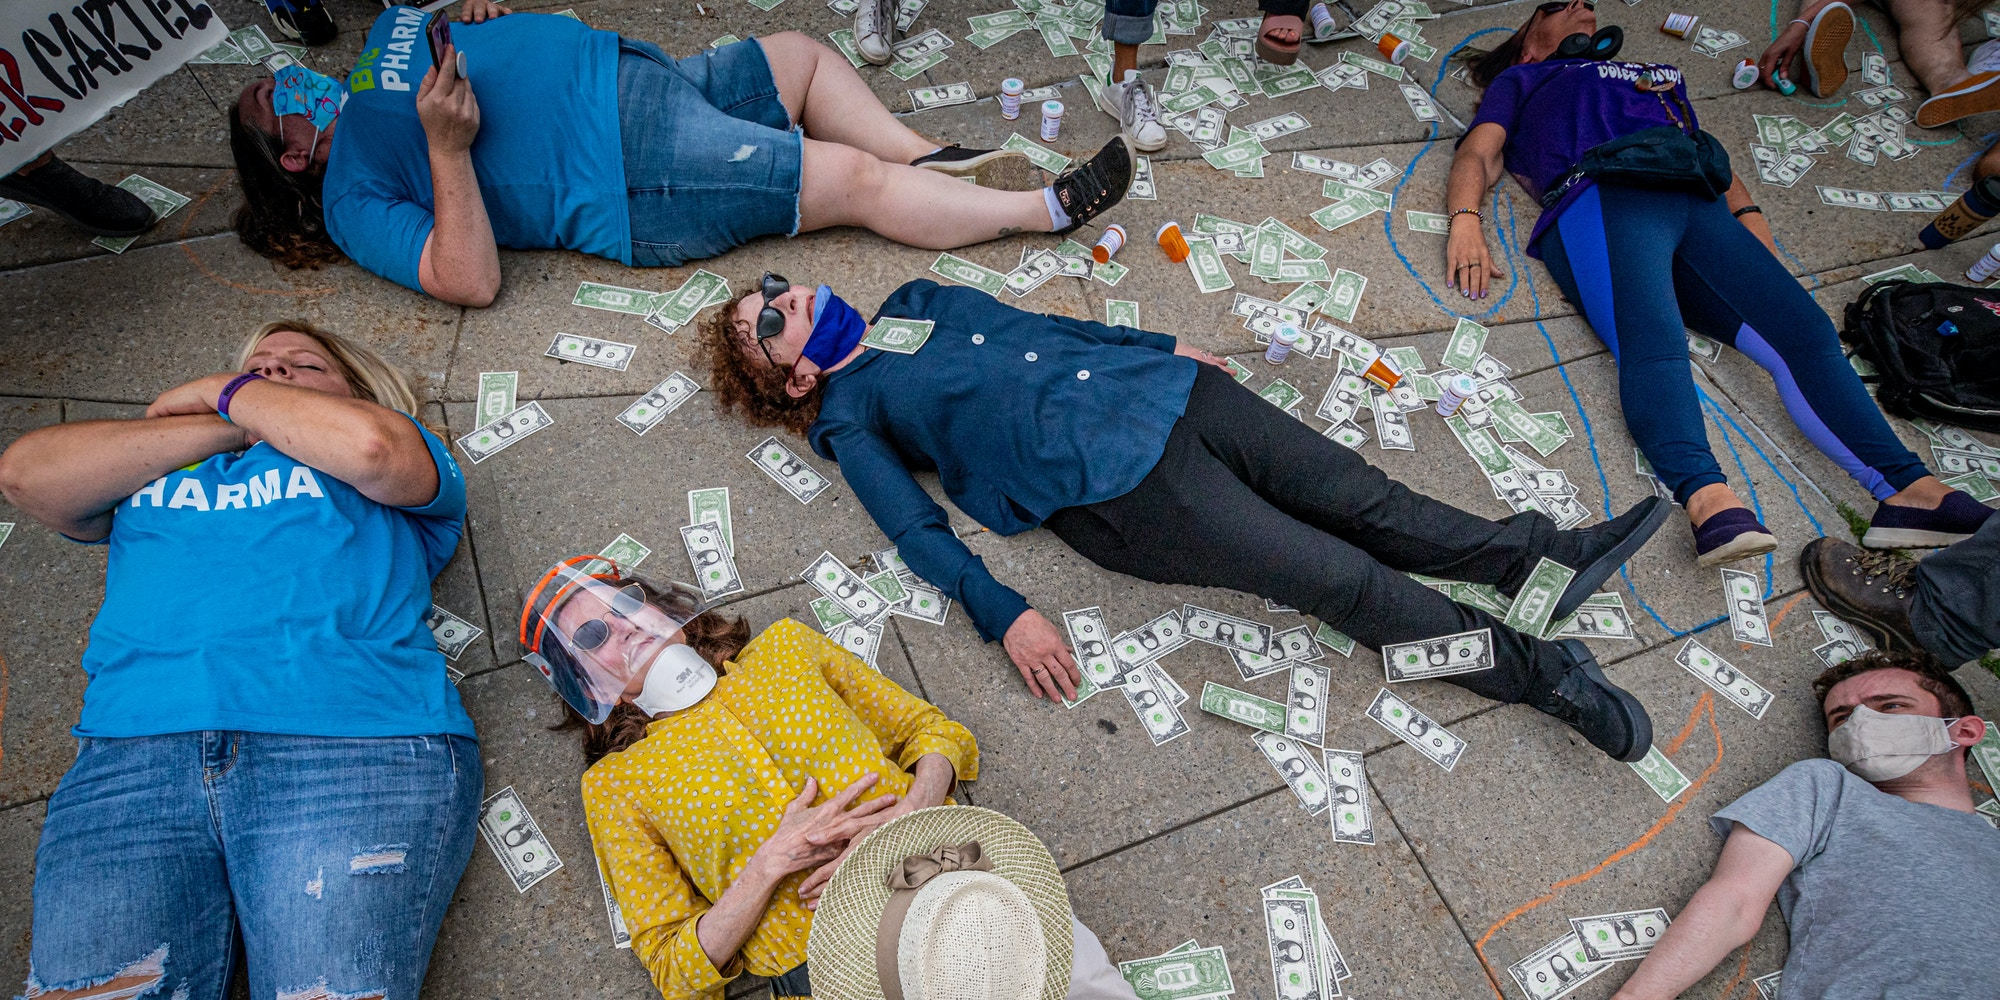 A coalition of survivors and advocacy groups are seen staging a die-in protest outside of The United States Bankruptcy Court, to call out the United States justice system for failing to hold the billionaire Sackler Family to account, in White Plains, N.Y. on Aug. 9, 2021.